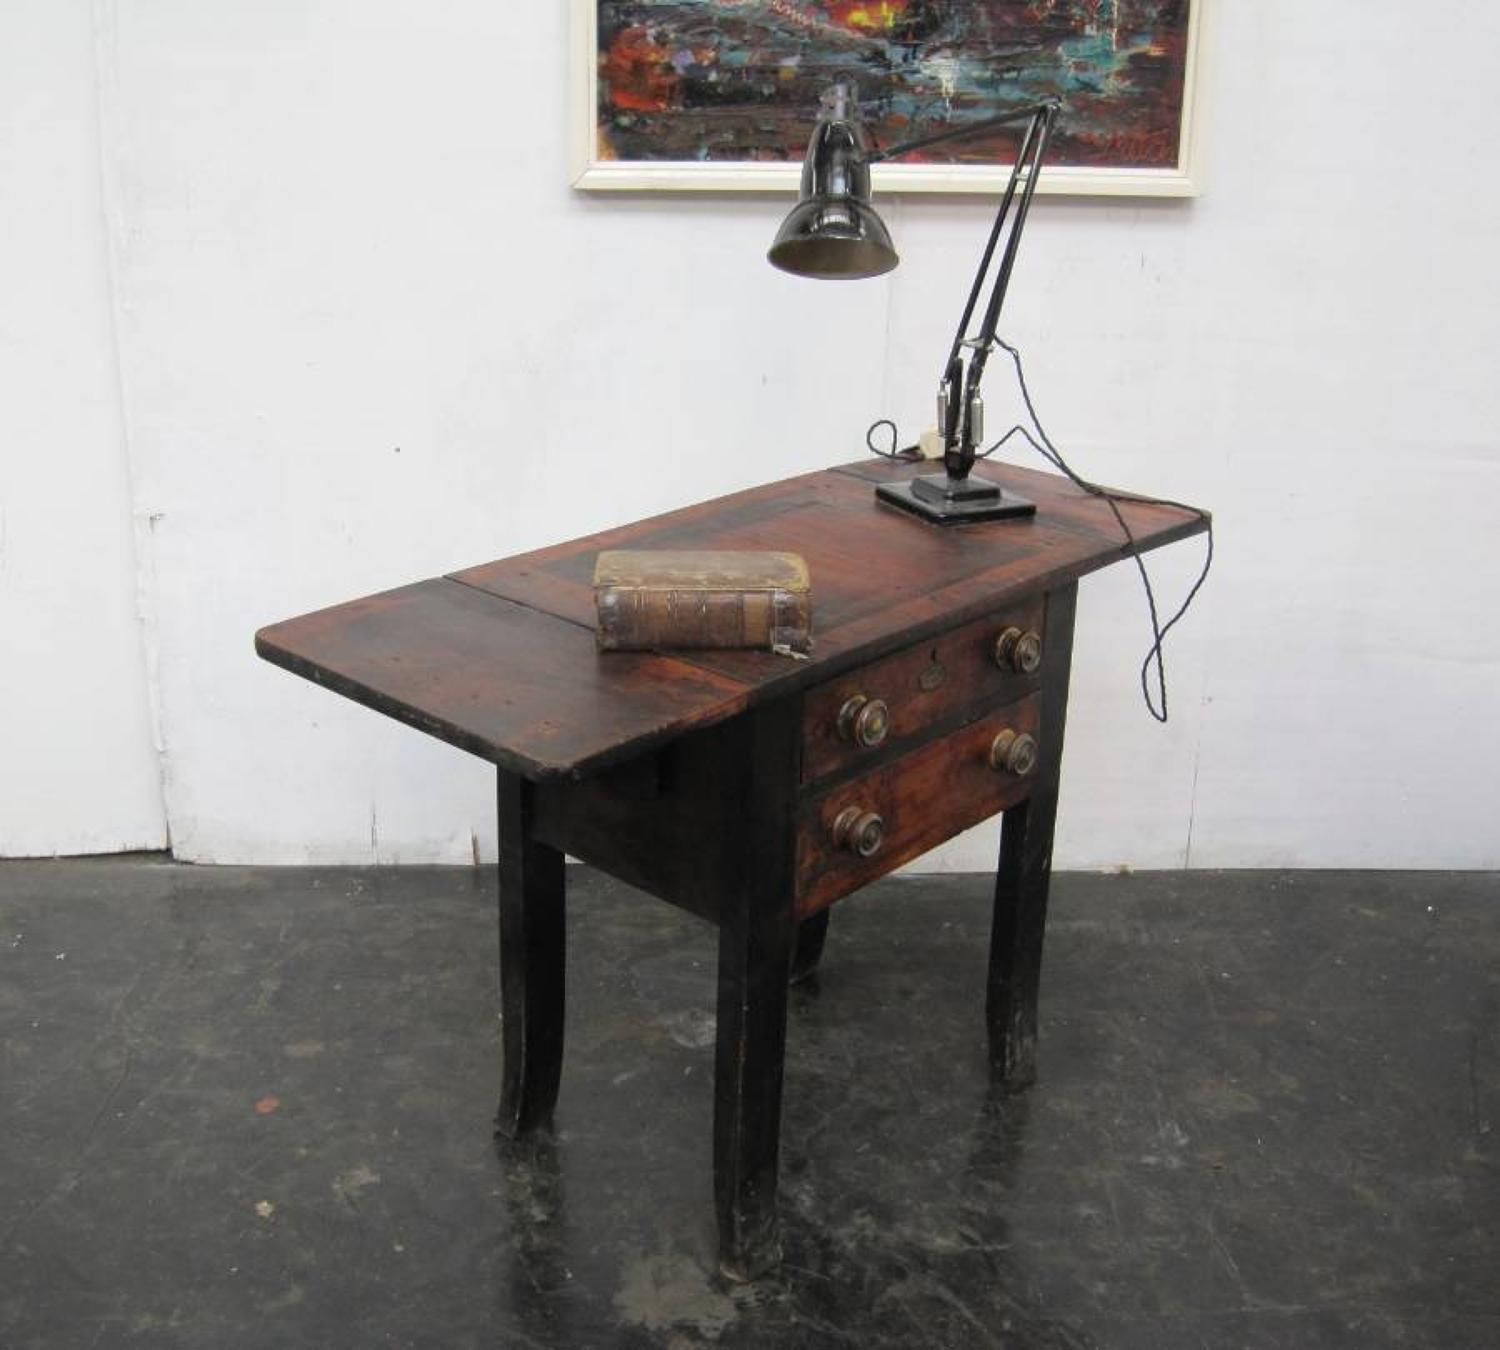 Antique copying table